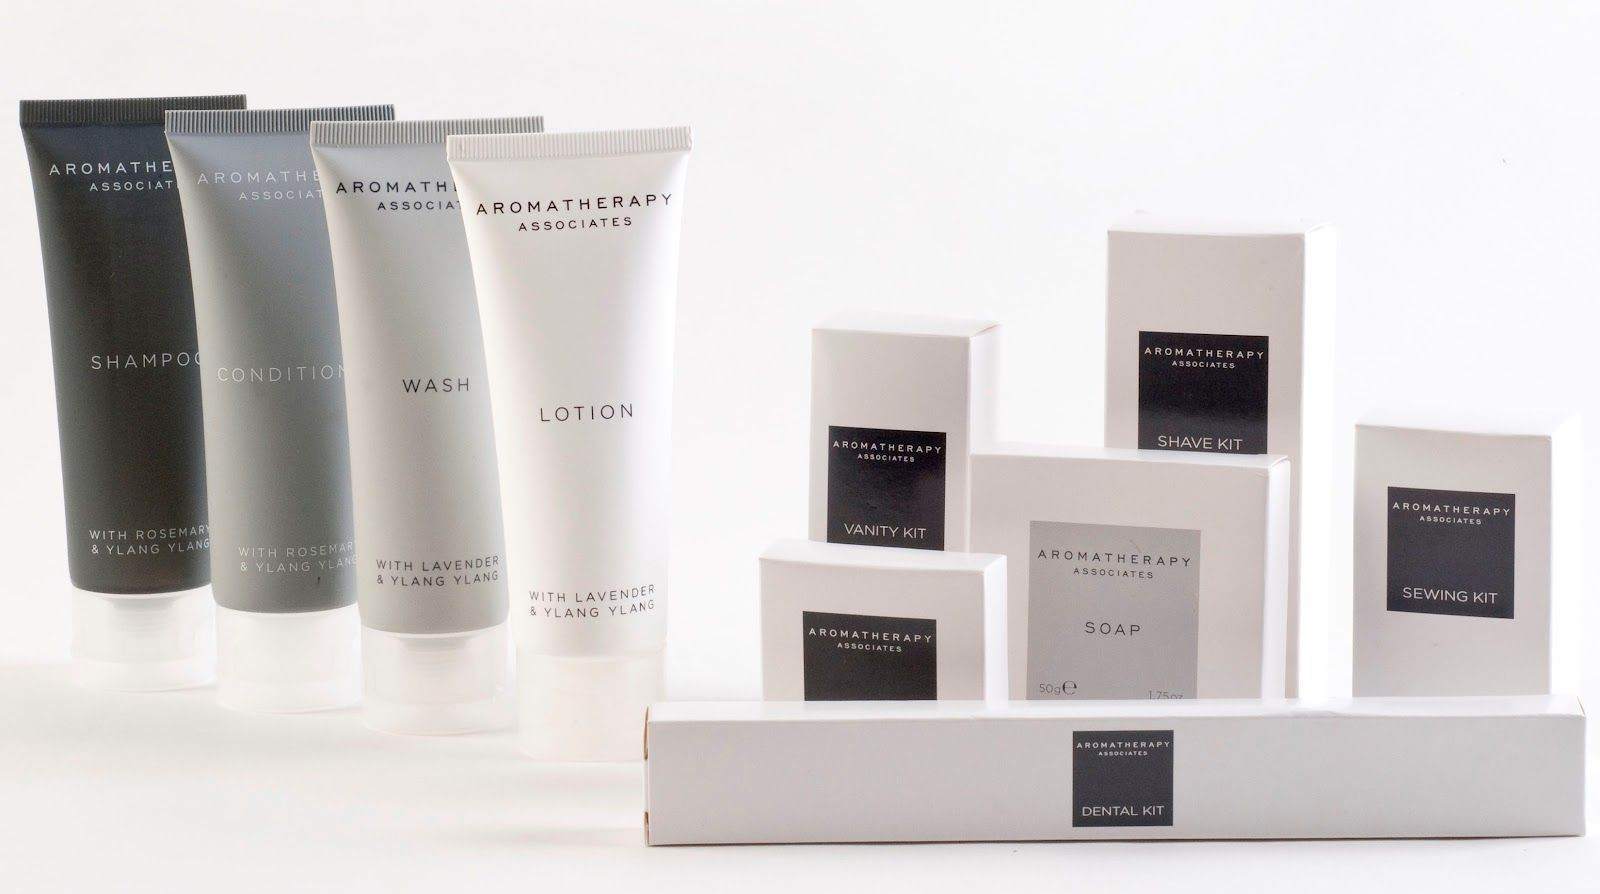 Jw Marriott New Aromatherapy Bath Amenities To Soothe Tired